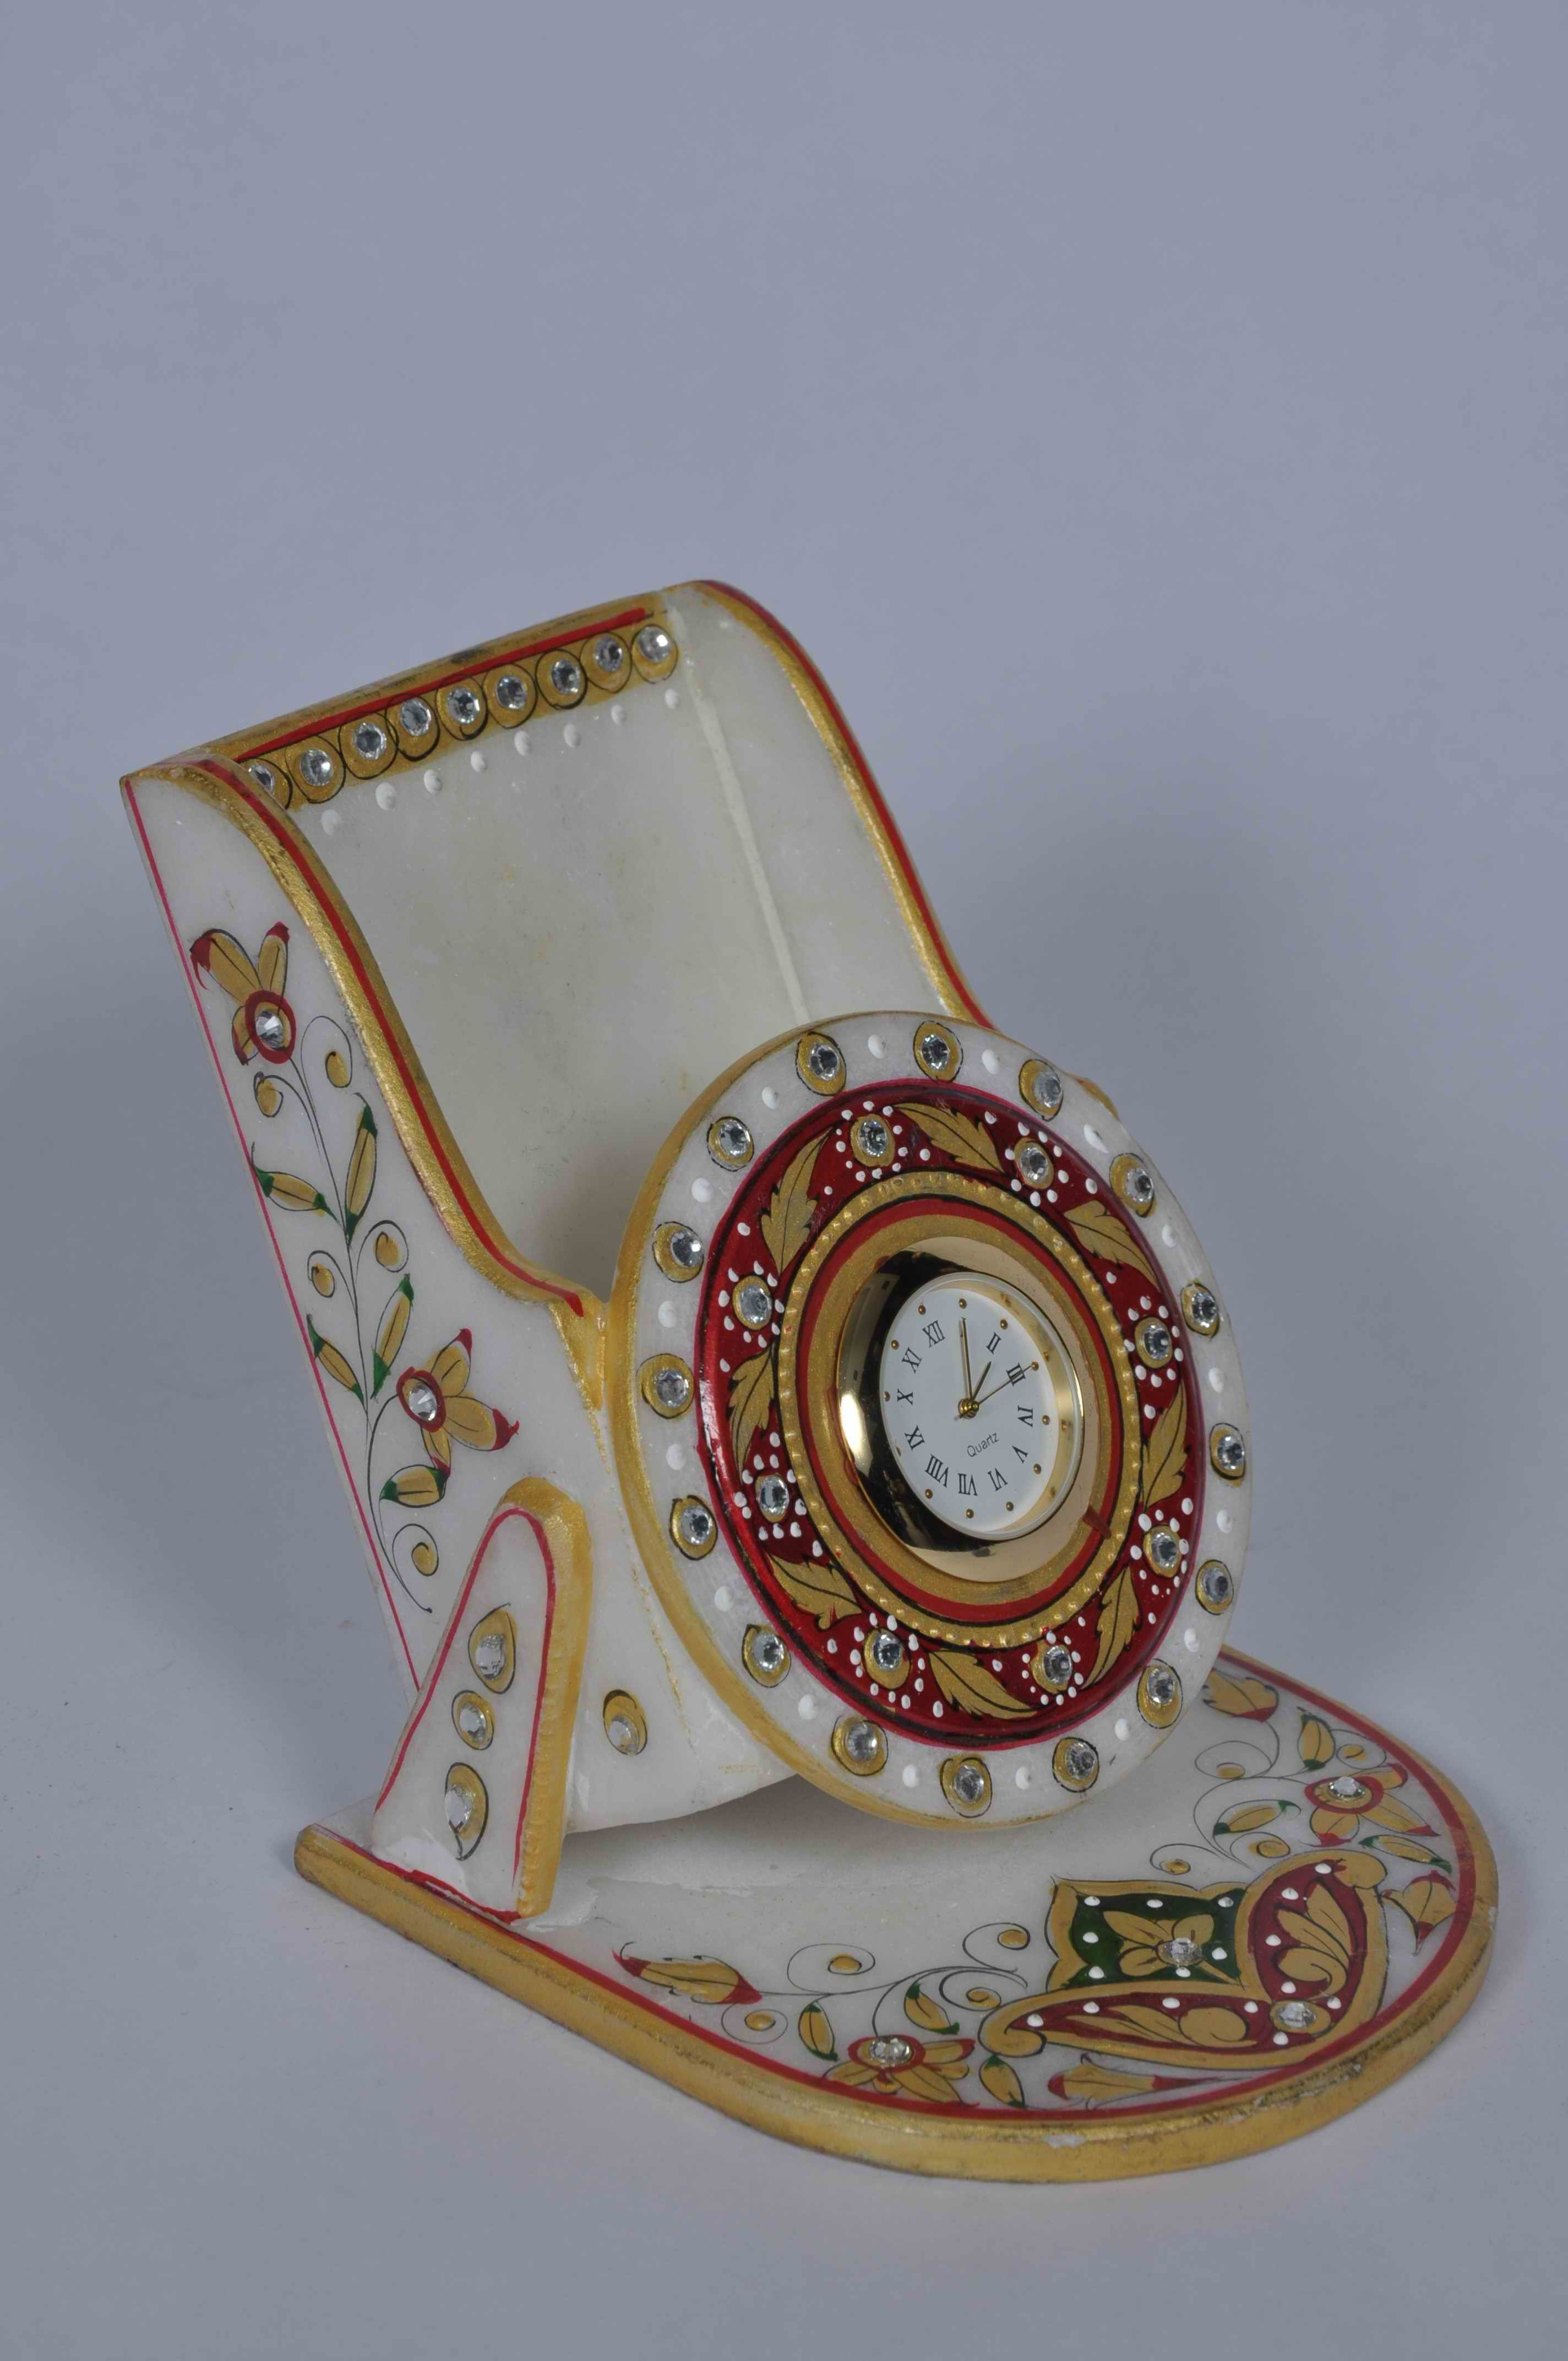 online store for indian handicraft gifts,home decor online